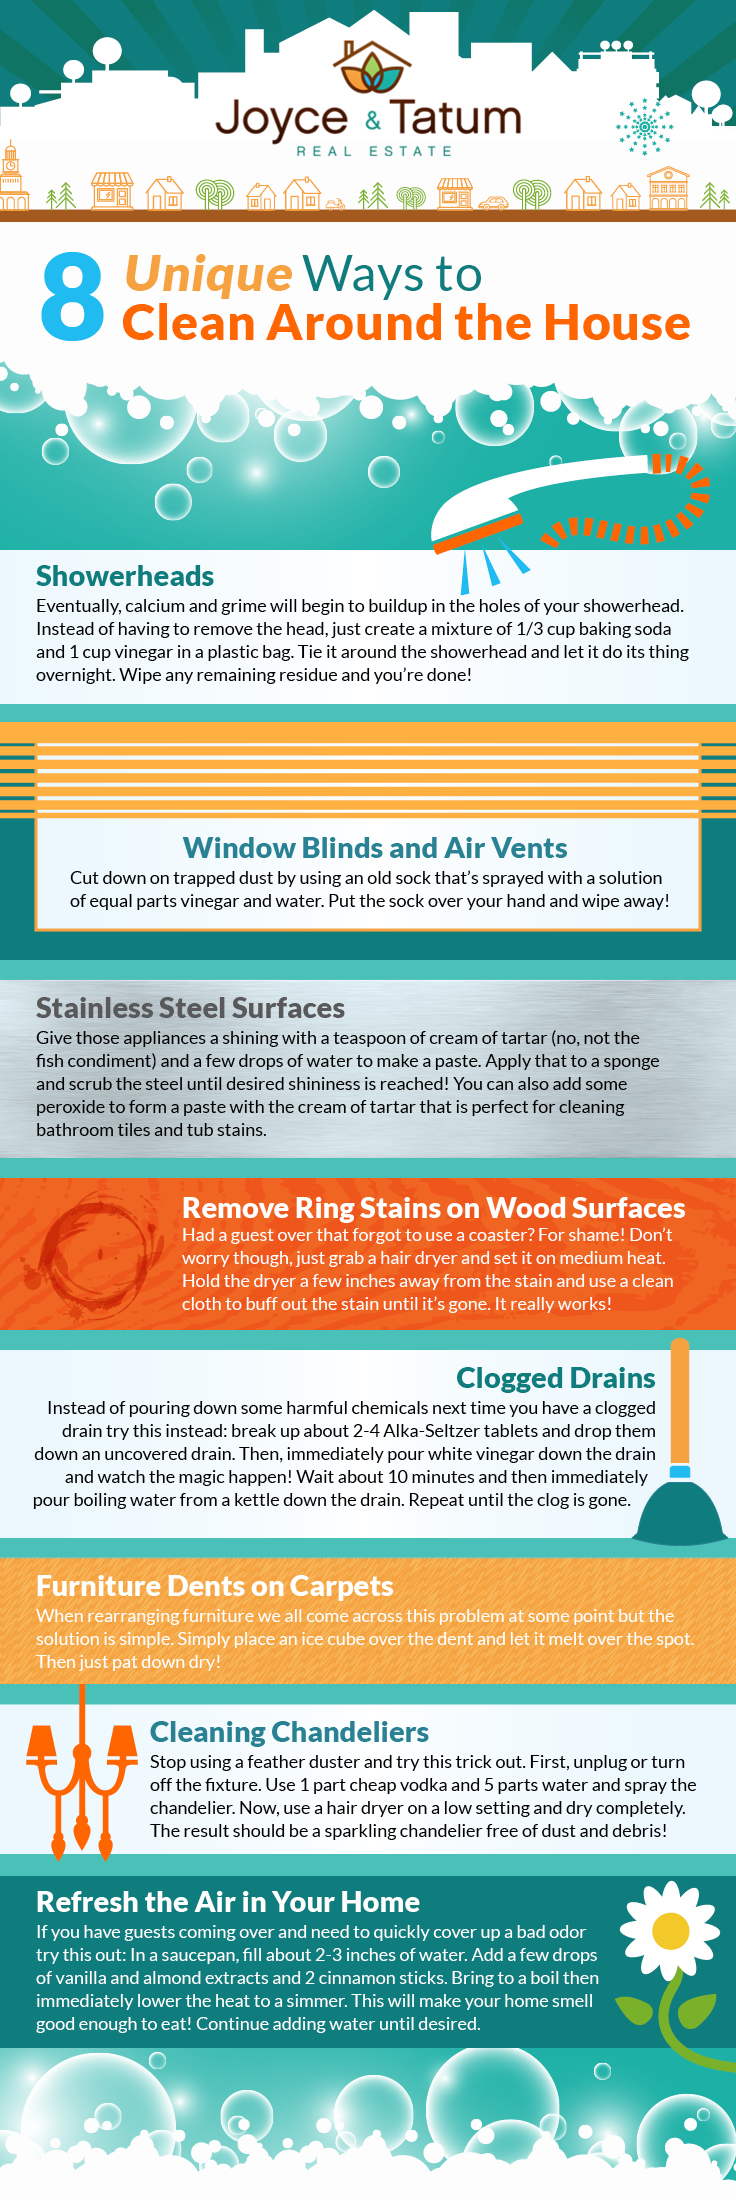 Infographic with tips on cleaning the home